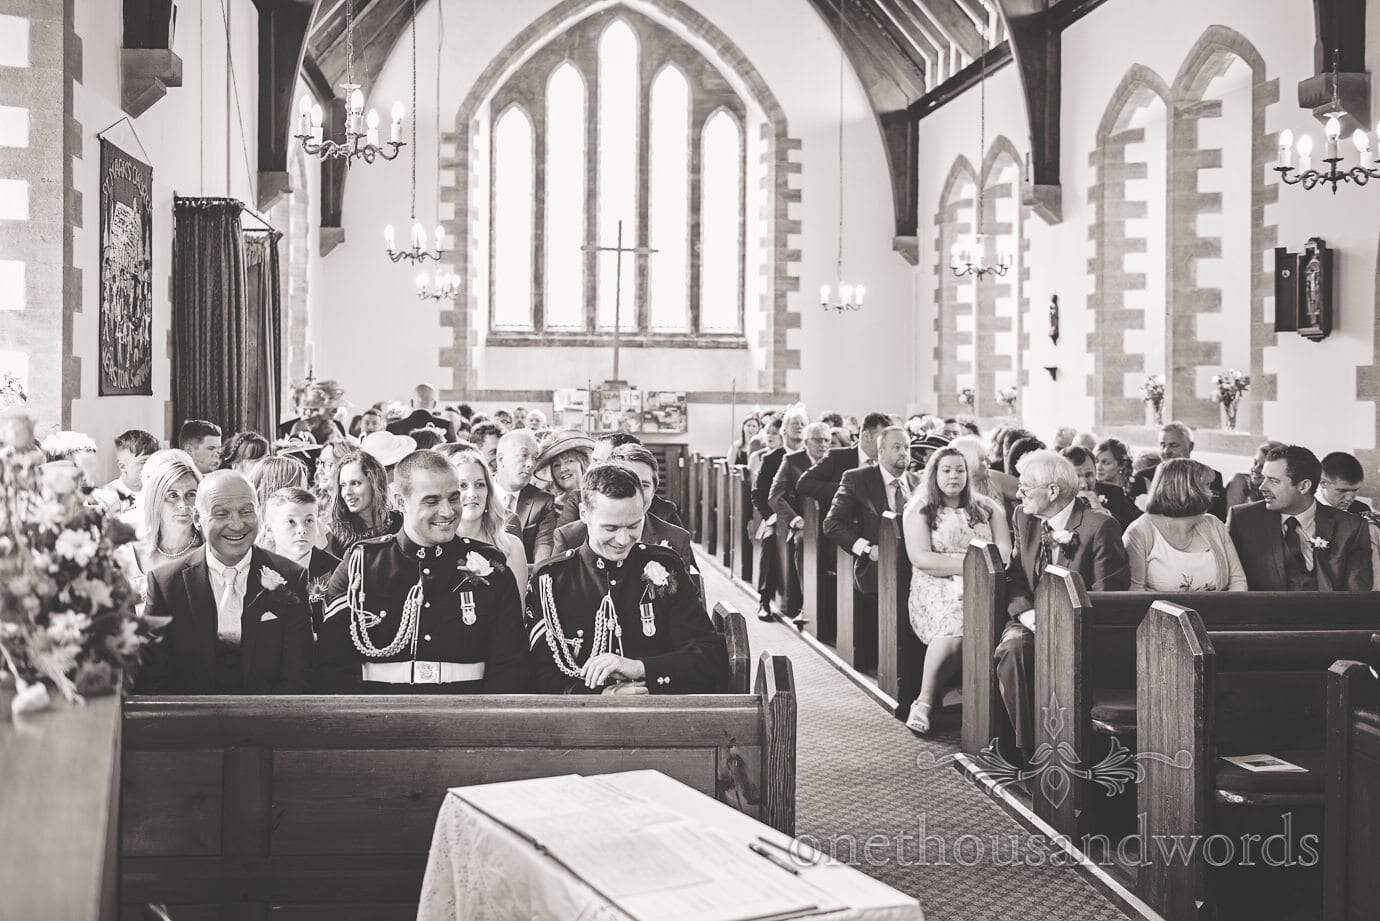 Black and white wedding photograph of groom waiting for bride in church